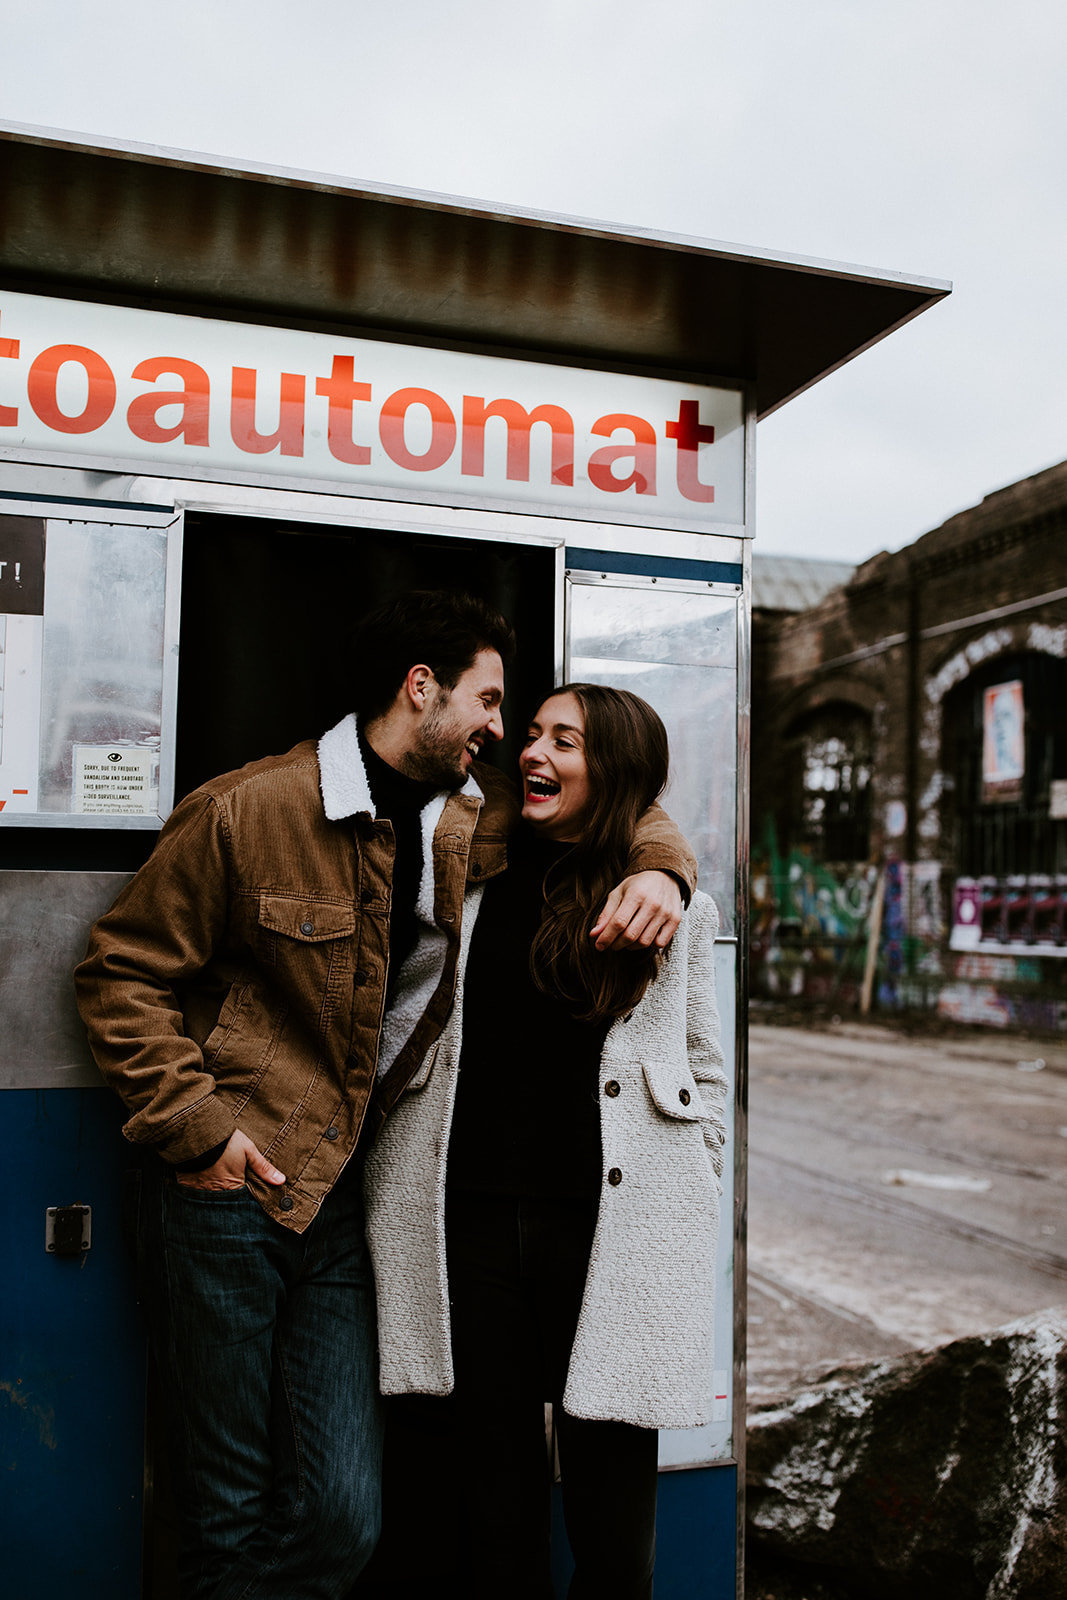 A man and woman stand in front of a photo booth.